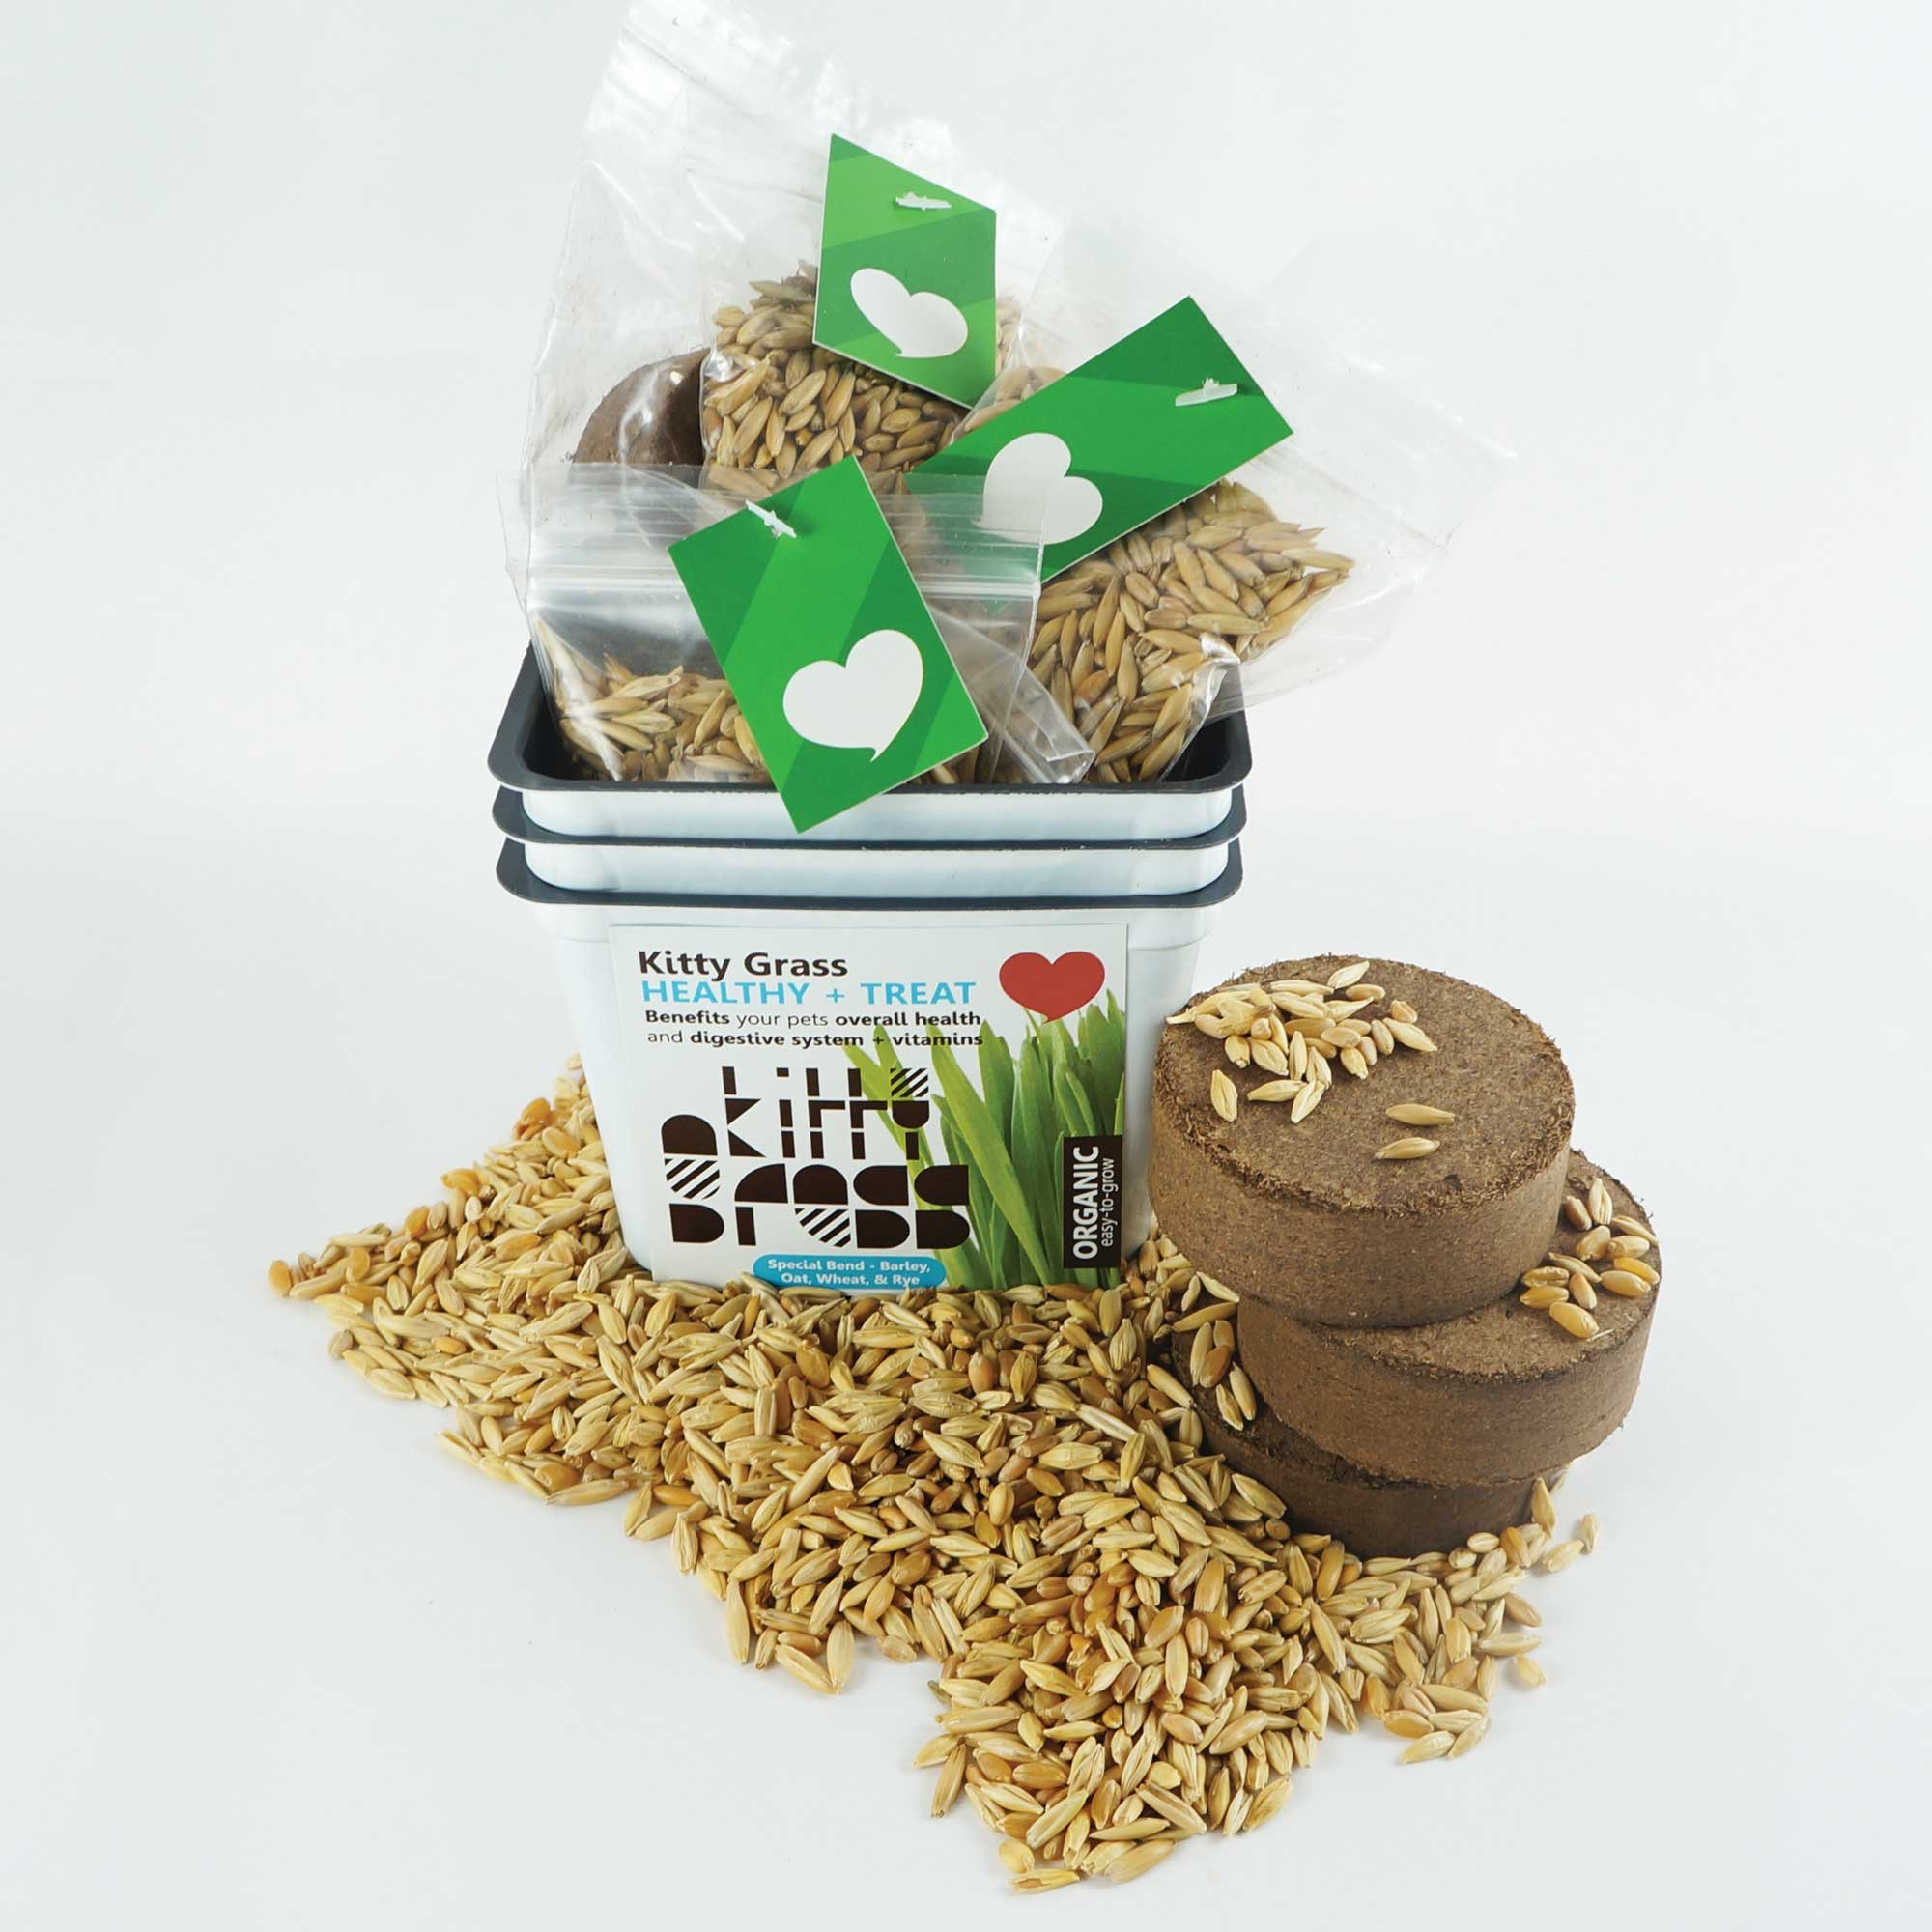 Priscillas Kitty Cat Pet Grass Seed Refill Pack and 100% Organic Soil Pods (Barley, Oats, Wheat and Rye) Over 3 Oz.